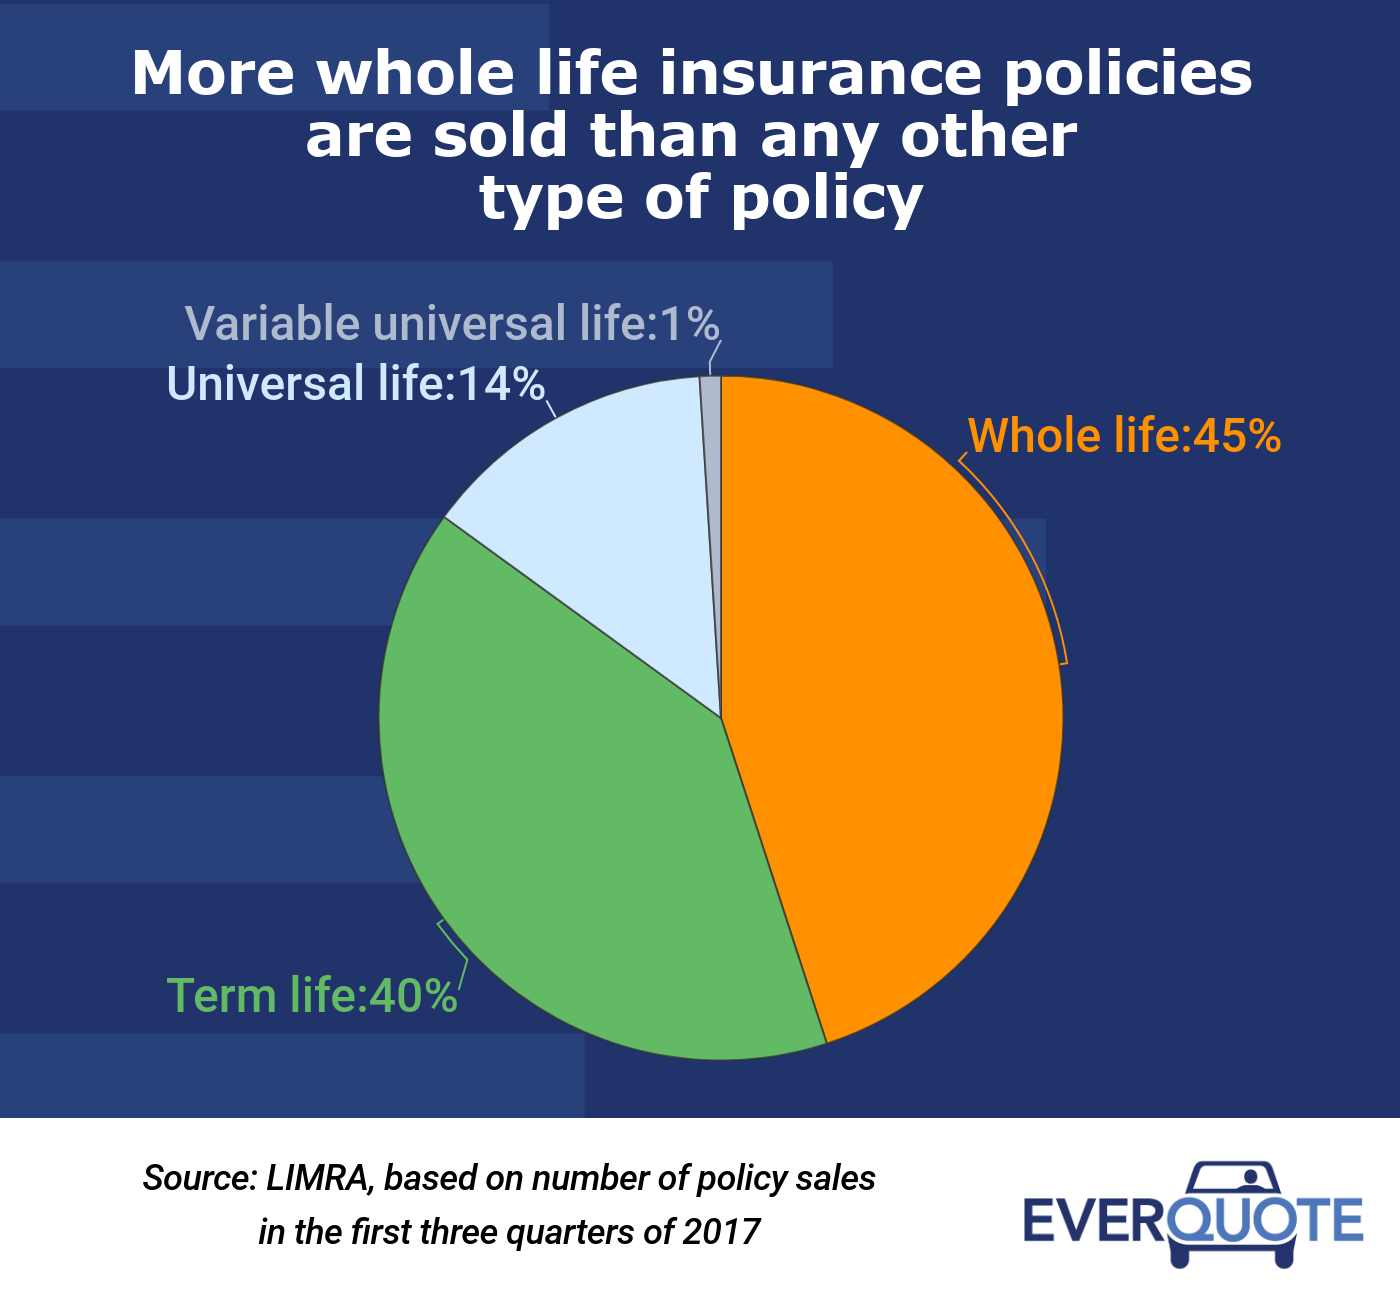 Whole life insurance policy sales